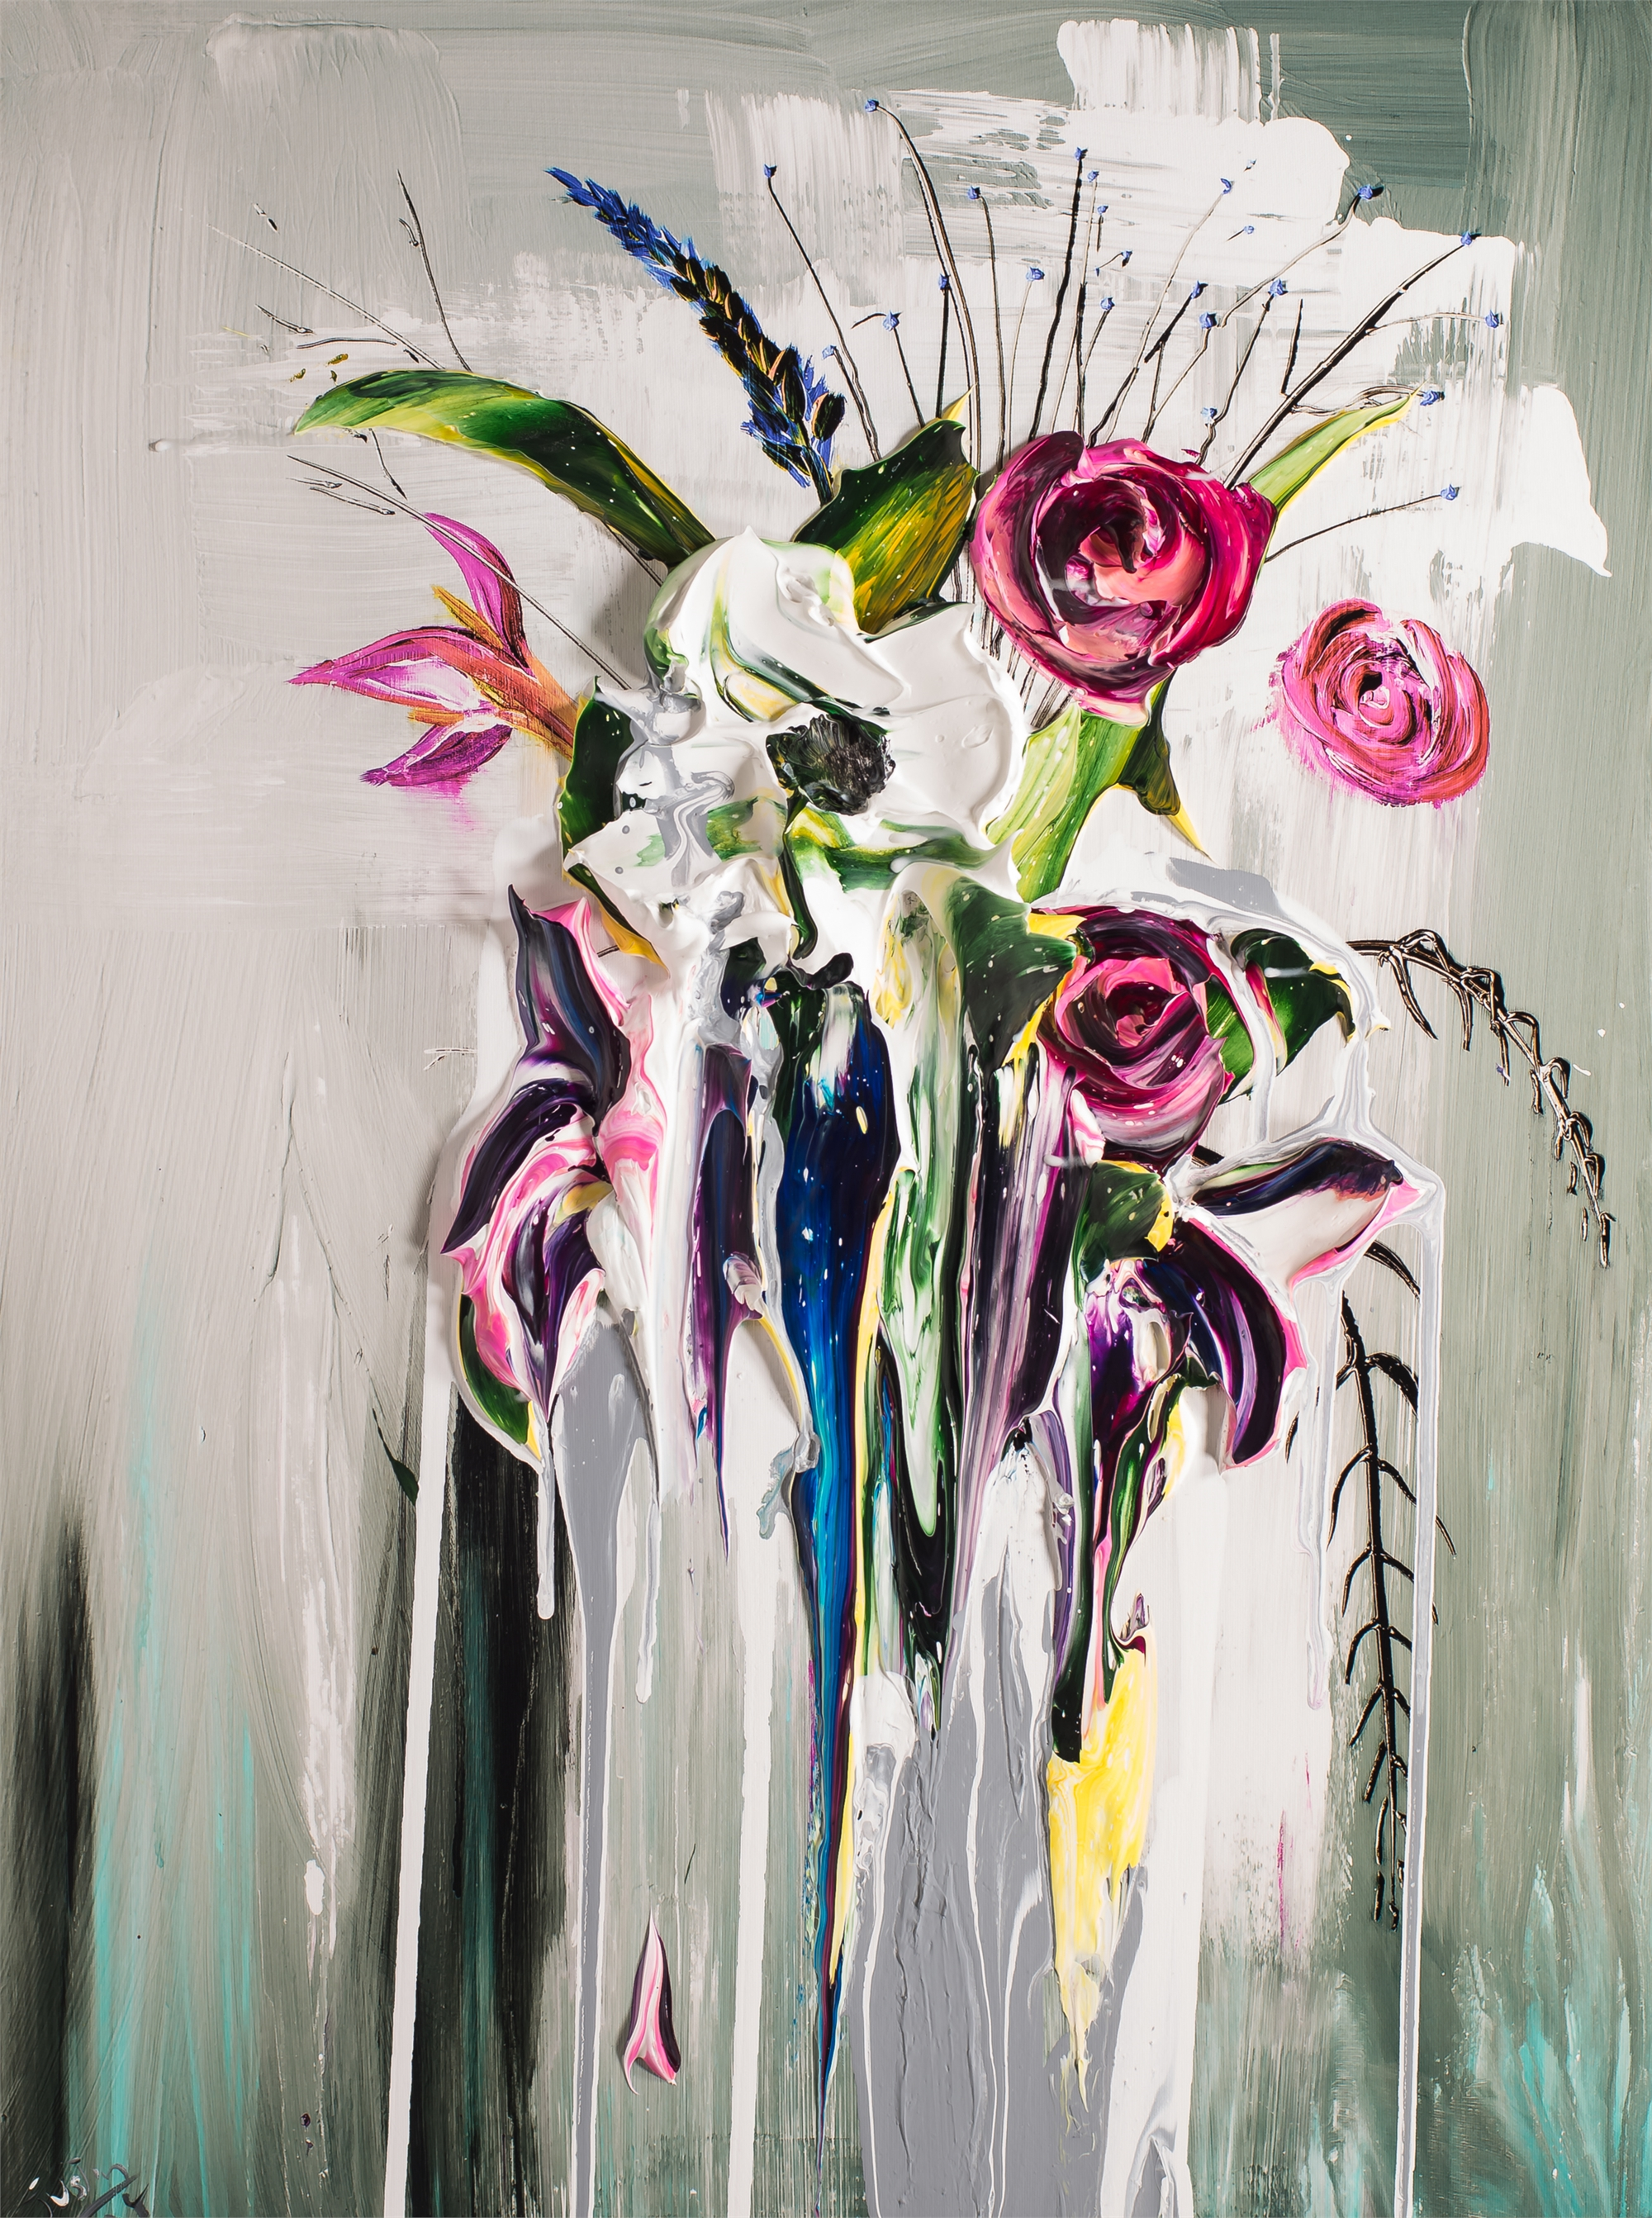 ABSTRACT FLORAL BOUQUET AFB24X32-2018-2.75NF HPAE 4/50 by Justin Gaffrey